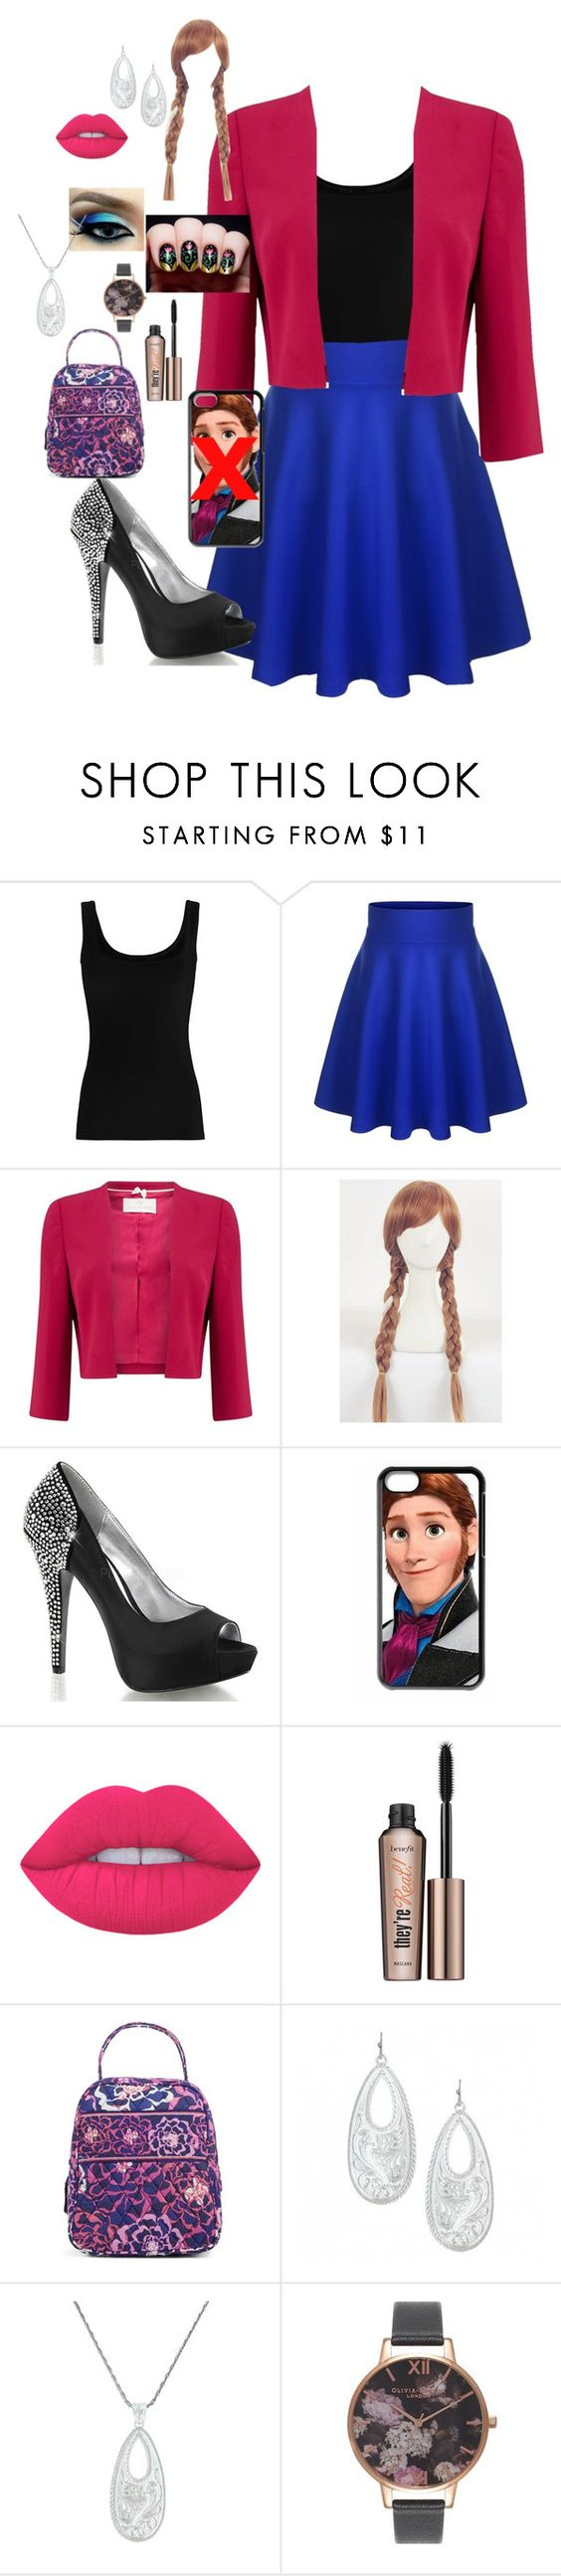 """Anna"" by crazedfangirl ❤ liked on Polyvore featuring Twenty, Jacques Vert, Disney, Lime Crime, Benefit, Vera Bradley and Olivia Burton"